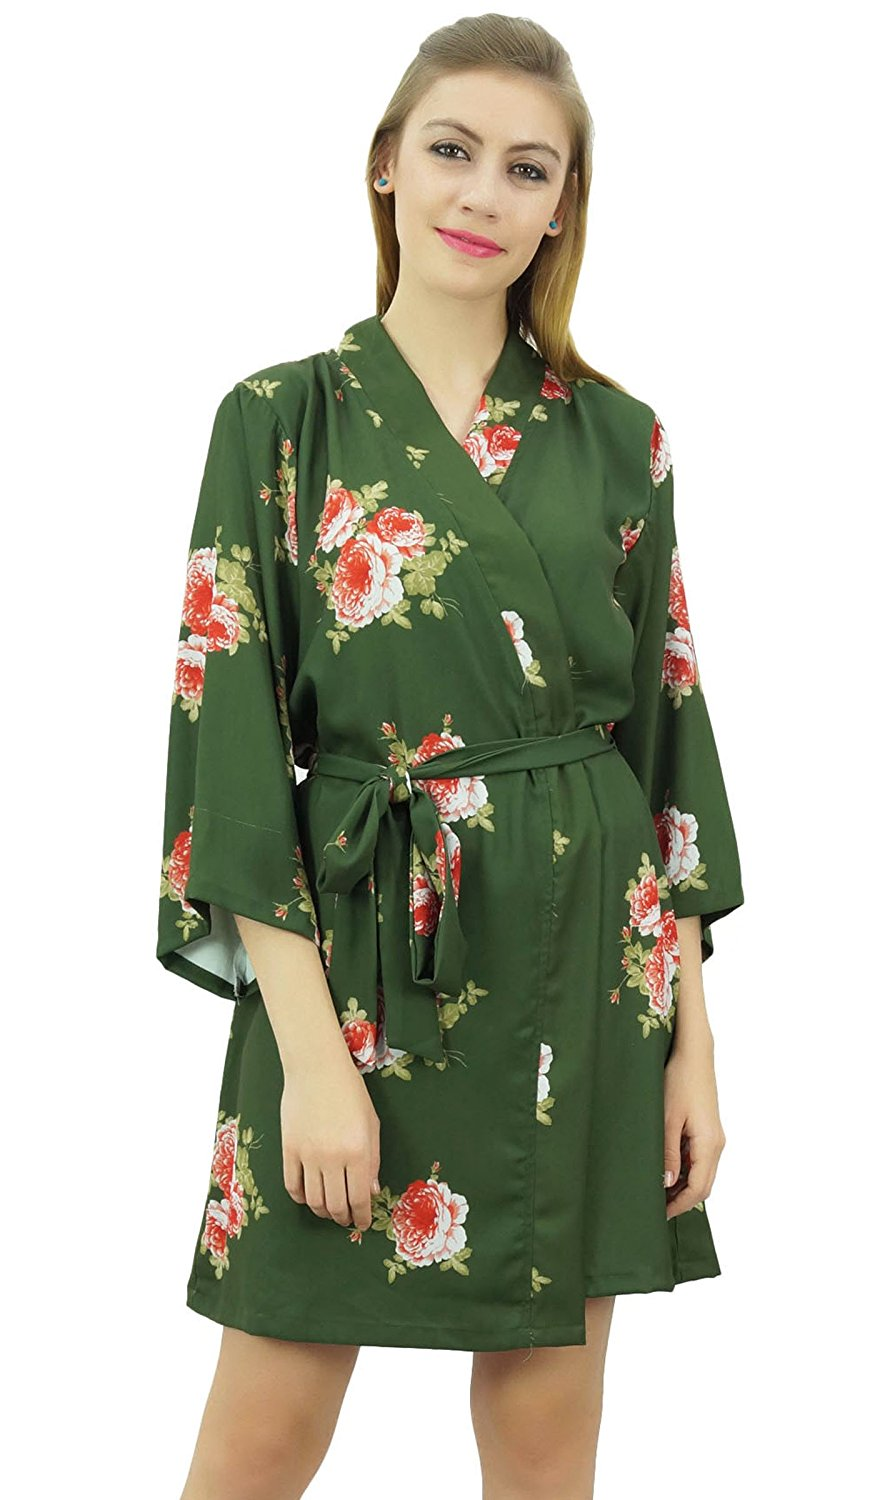 20c8980c86 Get Quotations · Bimba Women s Floral Printed Georgette Bridesmaid Robe  Coverup Wrap